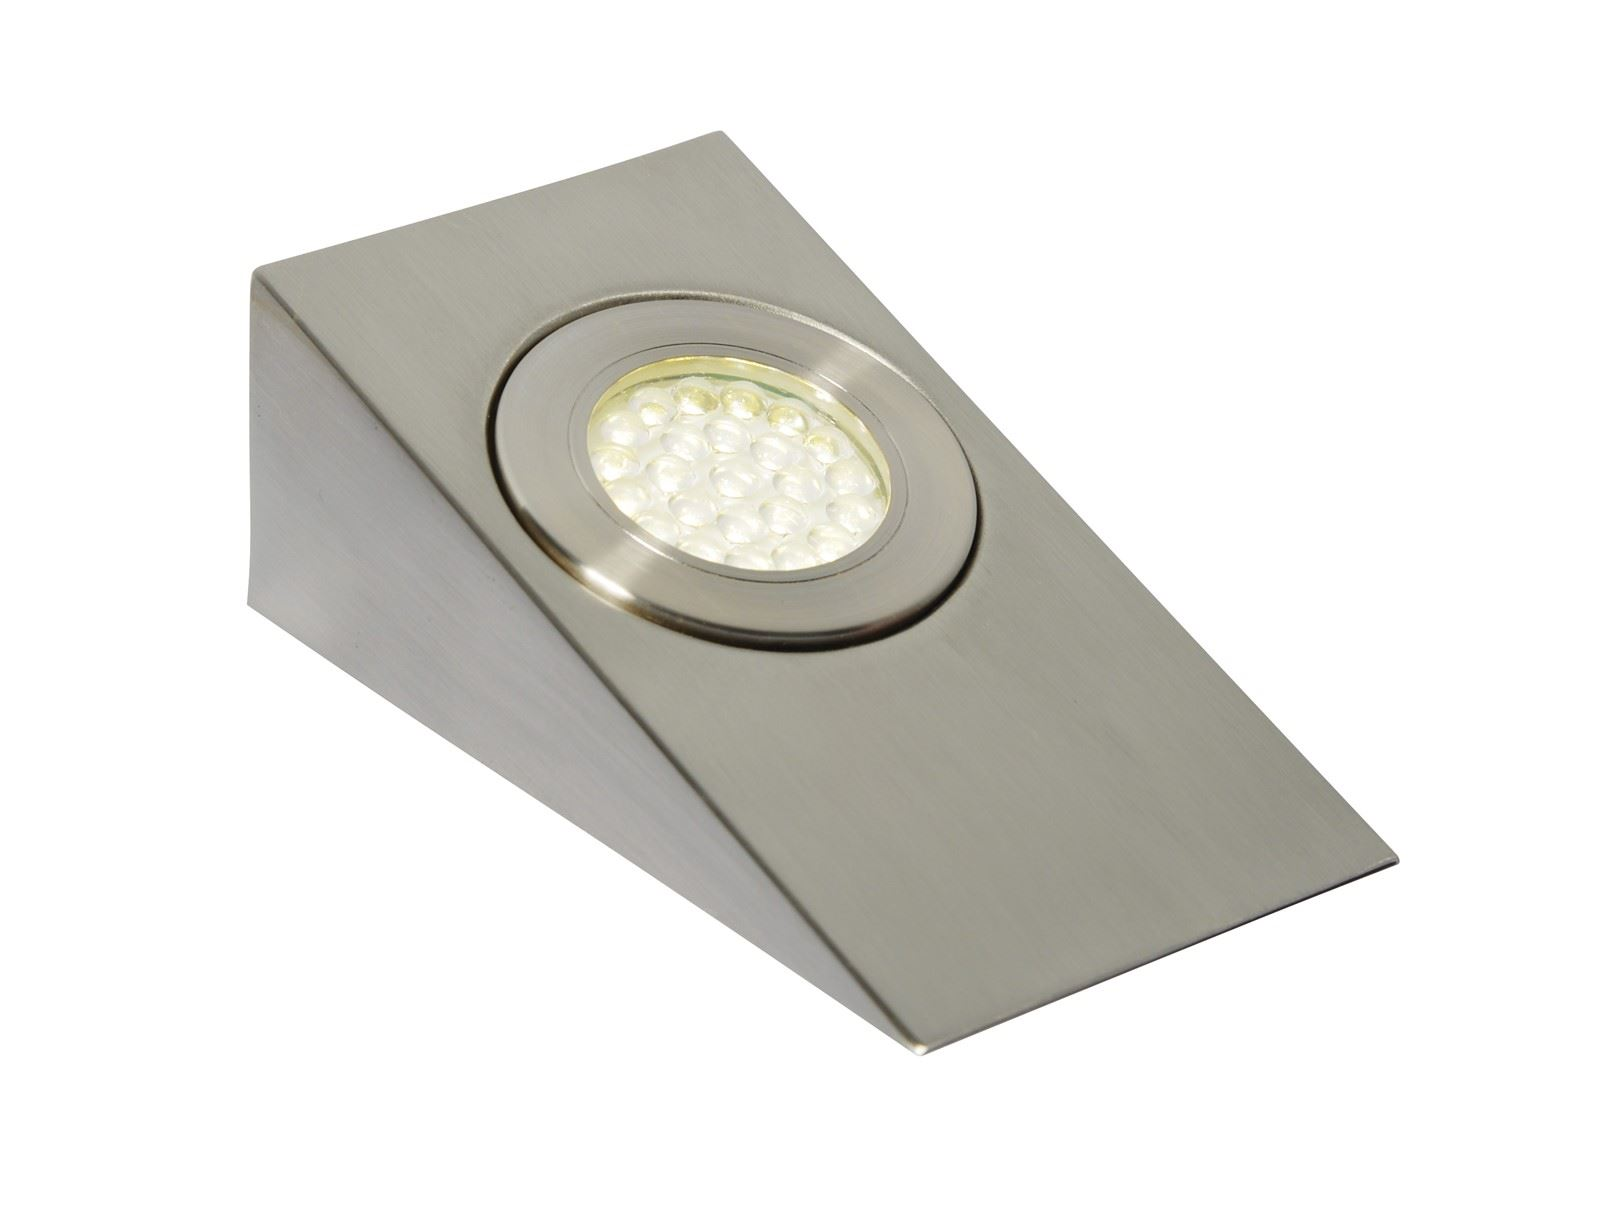 Lago Led, Mains Voltage, Wedge Cabinet Light, 4000K Cool White